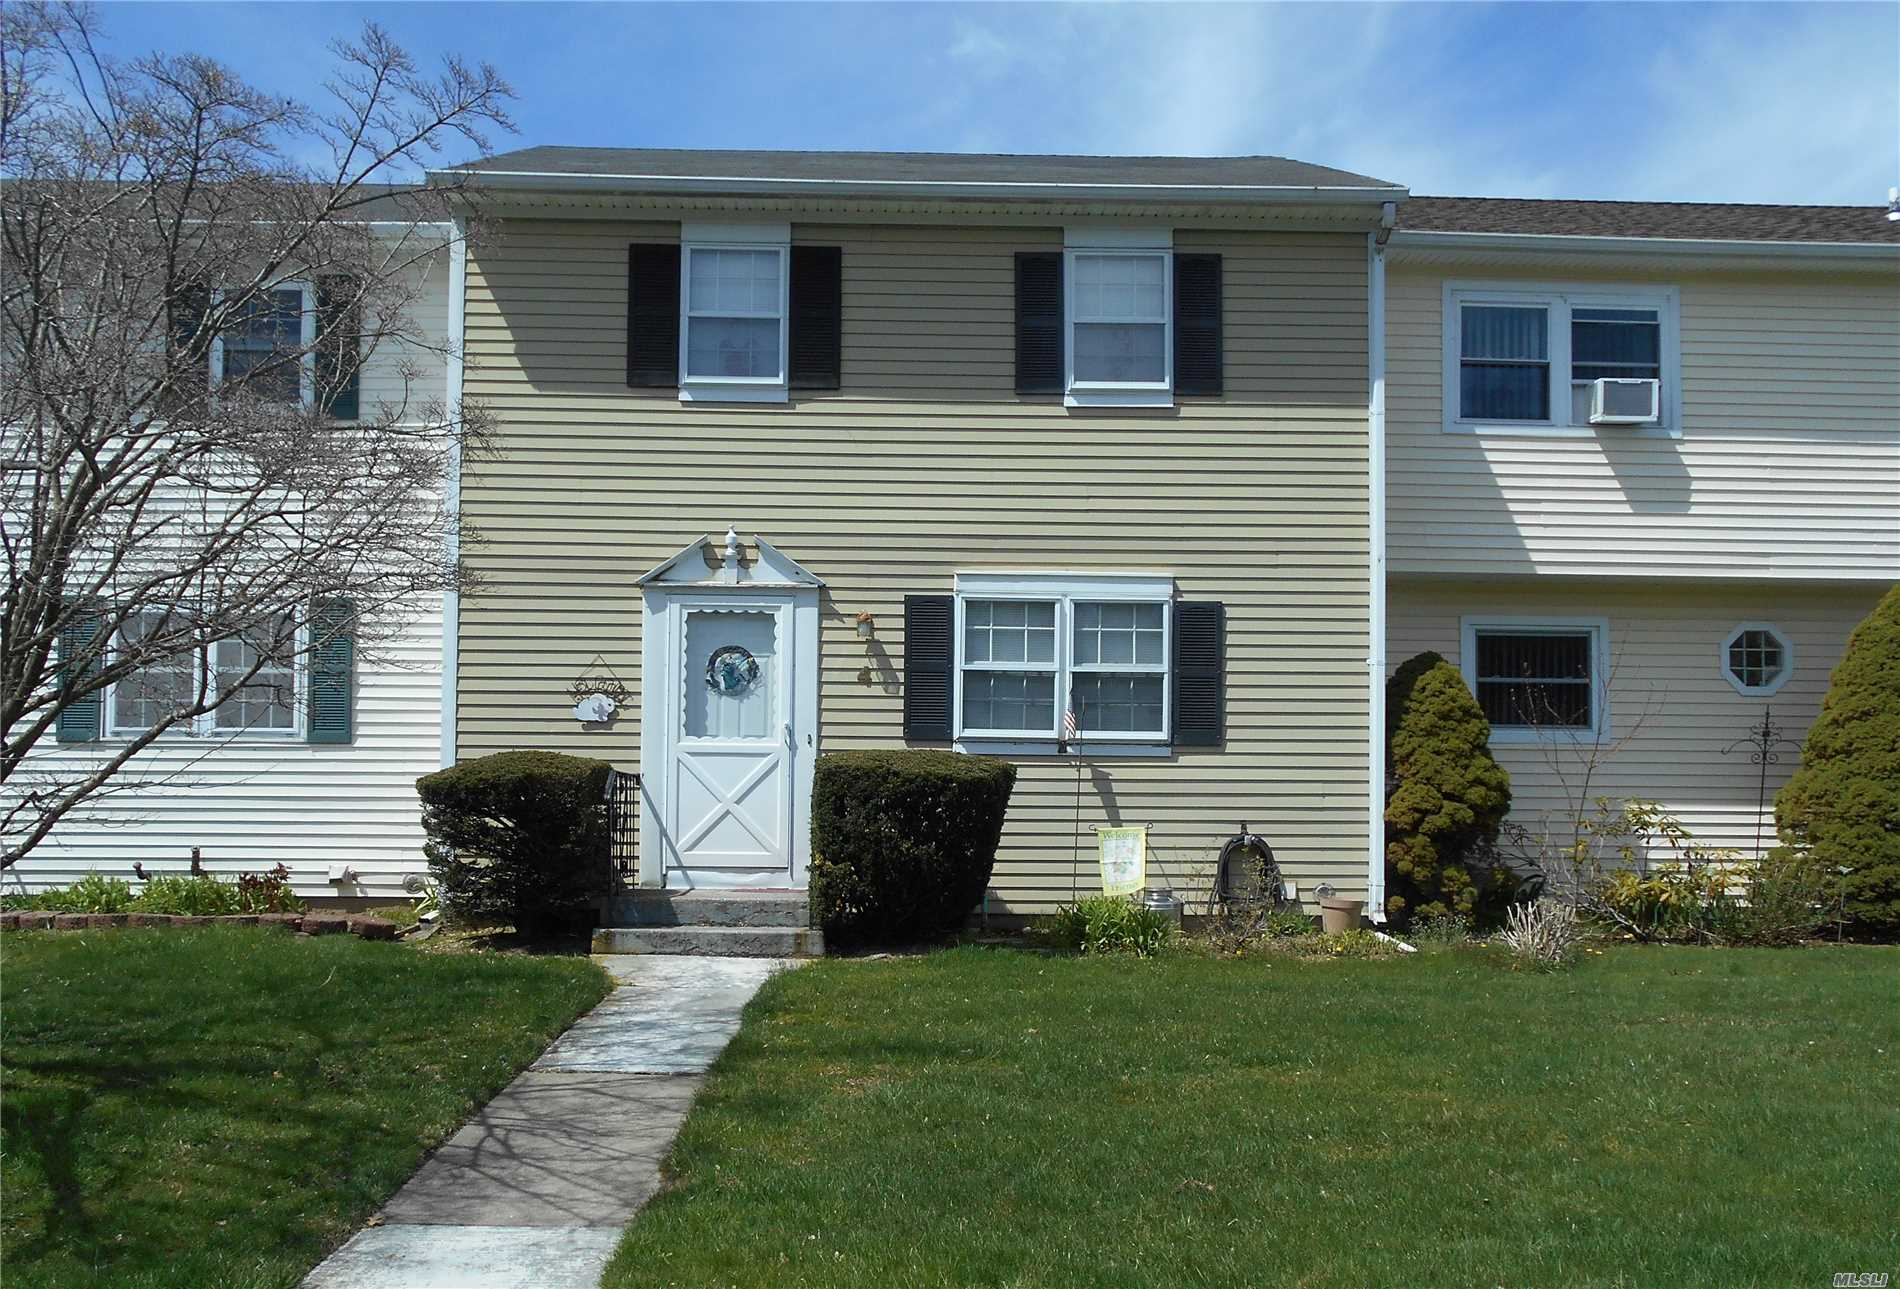 Here Is A Wonderful Opportunity To Get Into Strathmore Court Complex At A Great Price. The Hampton Model Features 2 Bedrooms, 1.5 Baths, Full Basement, Deck And Yard. The Complex Is Well Maintained With A Clubhouse, Large Pool, Tennis Courts And Playgrounds. Low Taxes And Common Charges. Unit Does Need Updating.